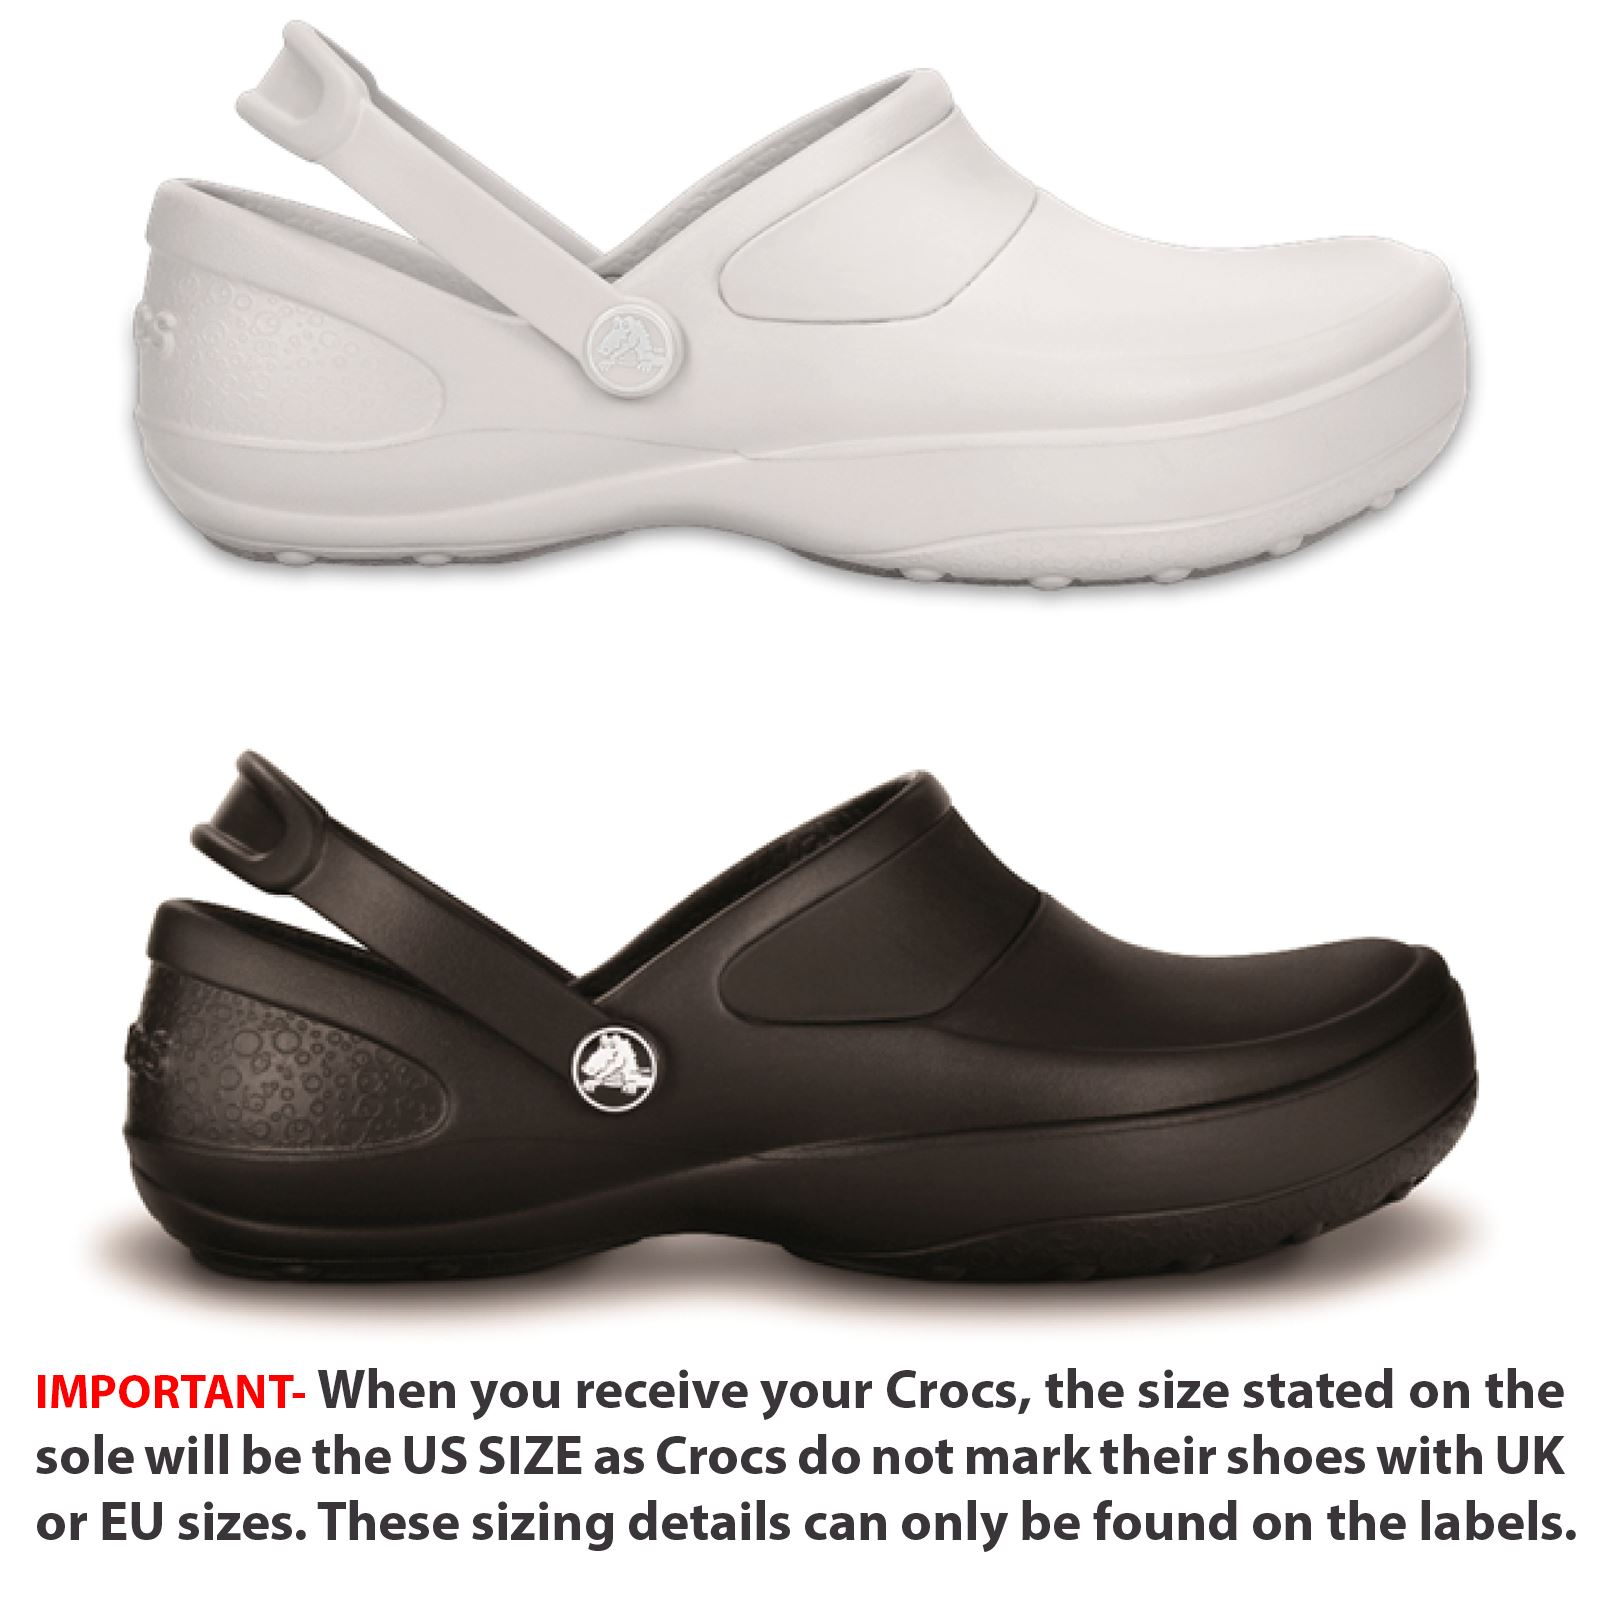 80f689bbc2b860 Details about Crocs Mercy Work Medical Professionals Roomy Fit Clogs Shoes  10876